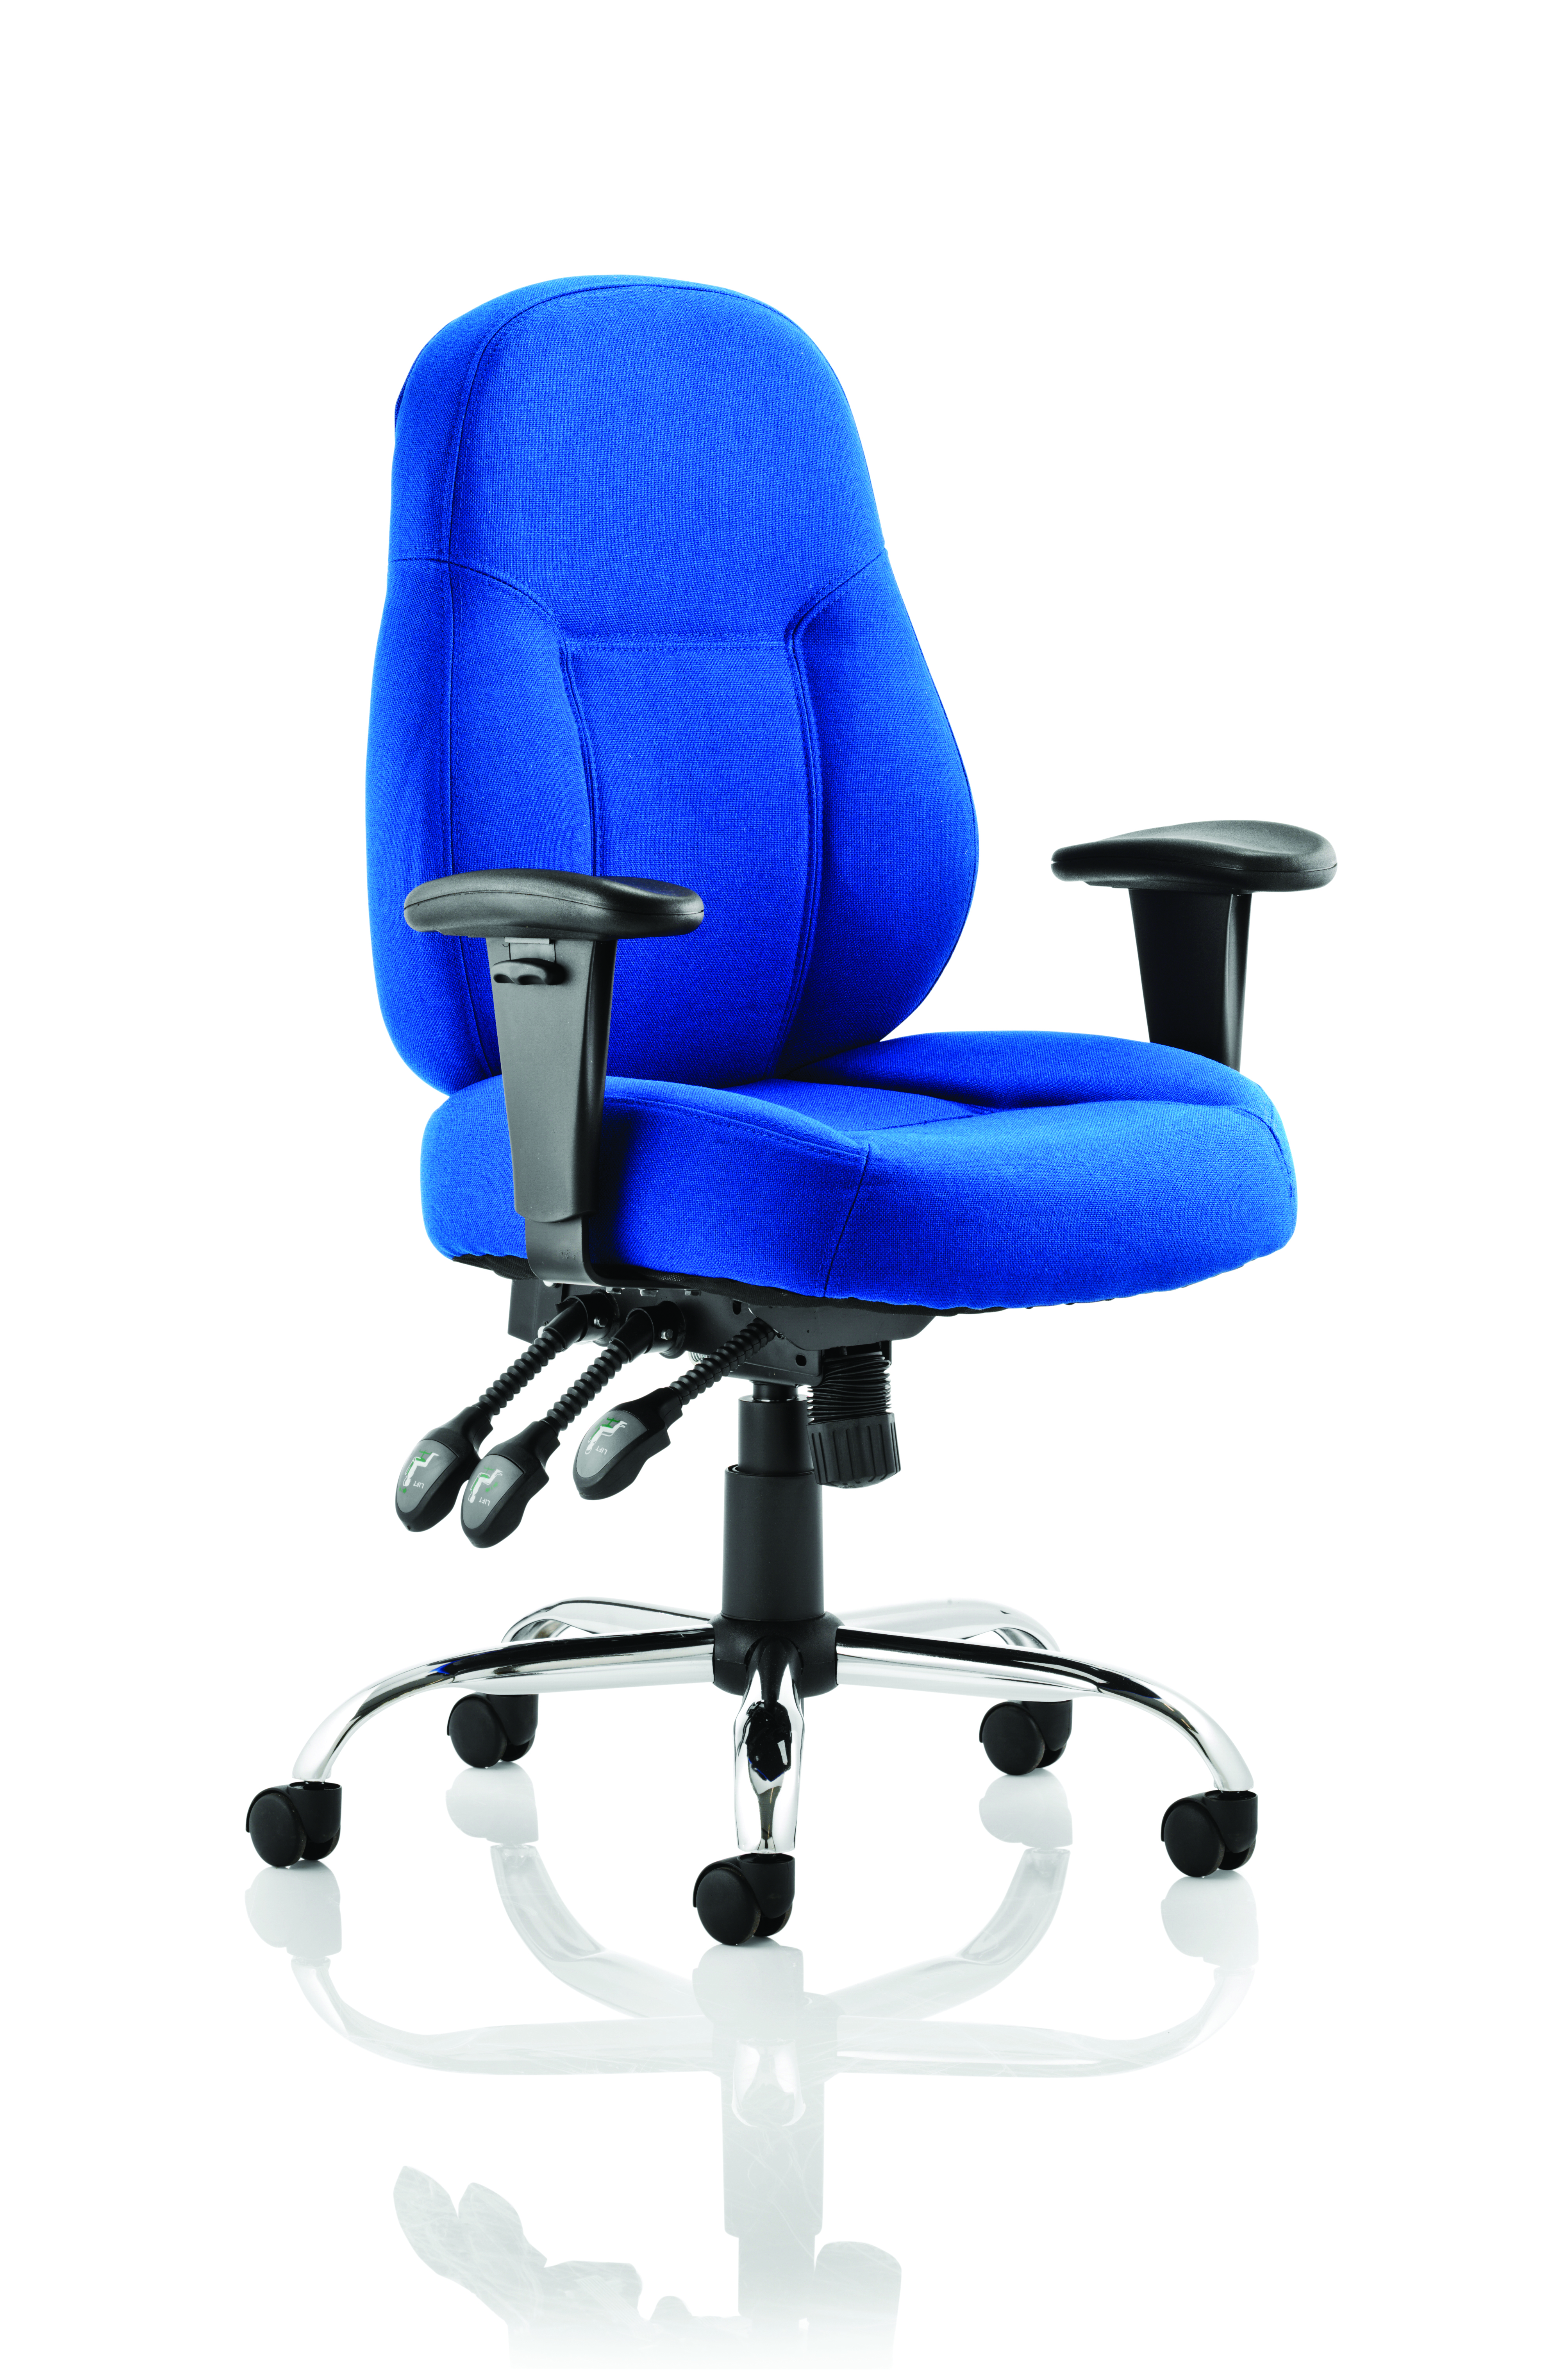 Desk Chairs Storm Chair Blue Fabric With Arms OP000128